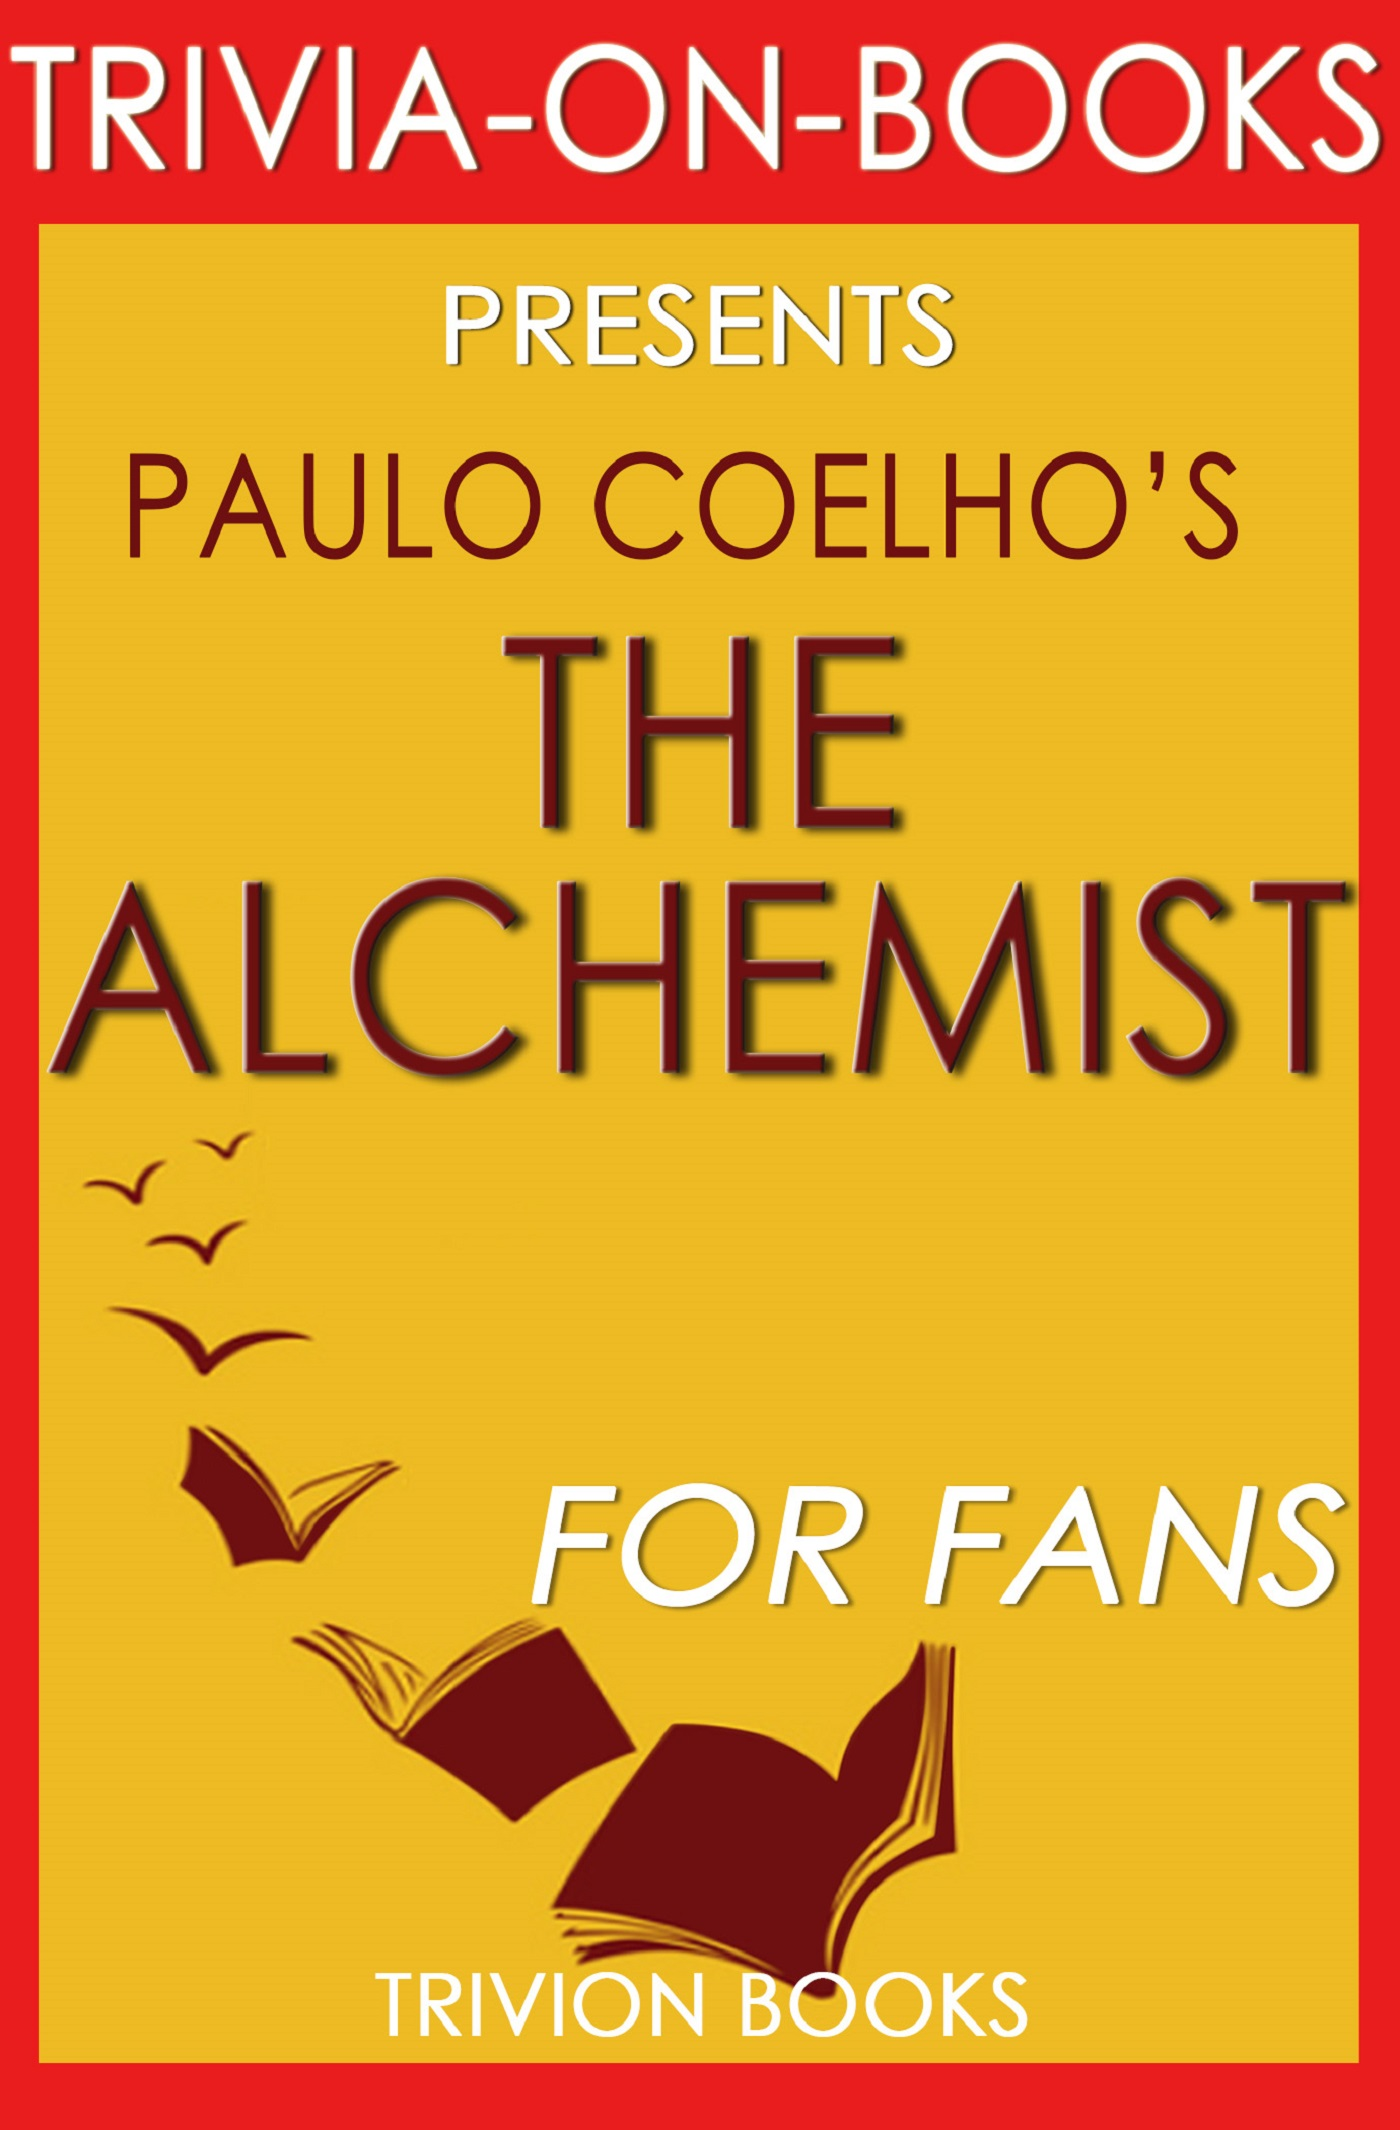 the alchemist by paulo coelho a The alchemist by paulo coelho pdf book, by paulo coelho, isbn: 0061122416, genres: fiction other.